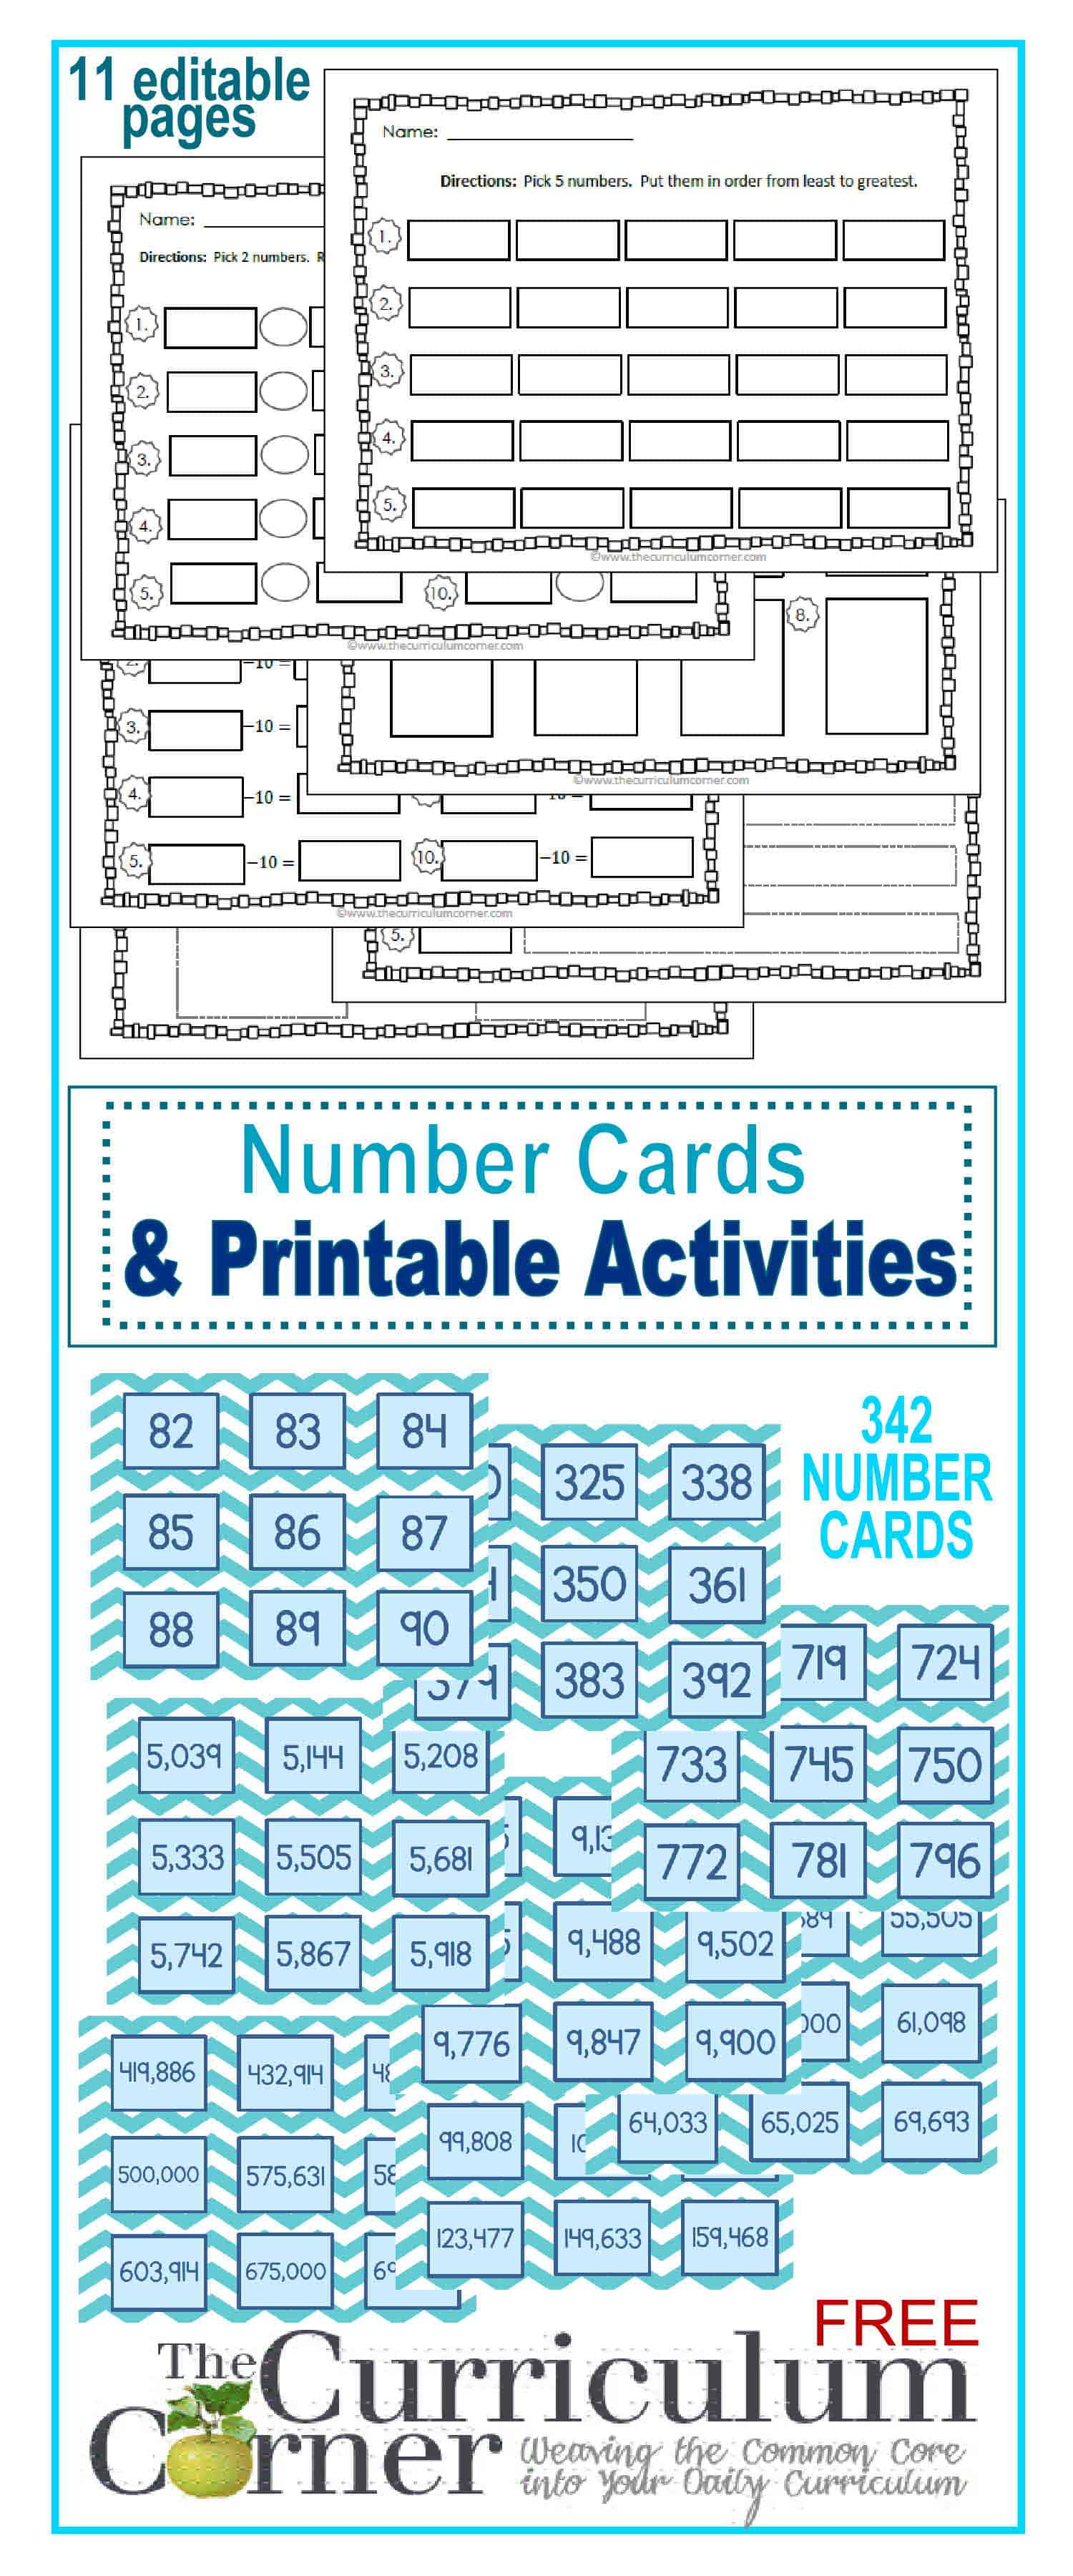 Math Archives - Page 16 of 35 - The Curriculum Corner 123